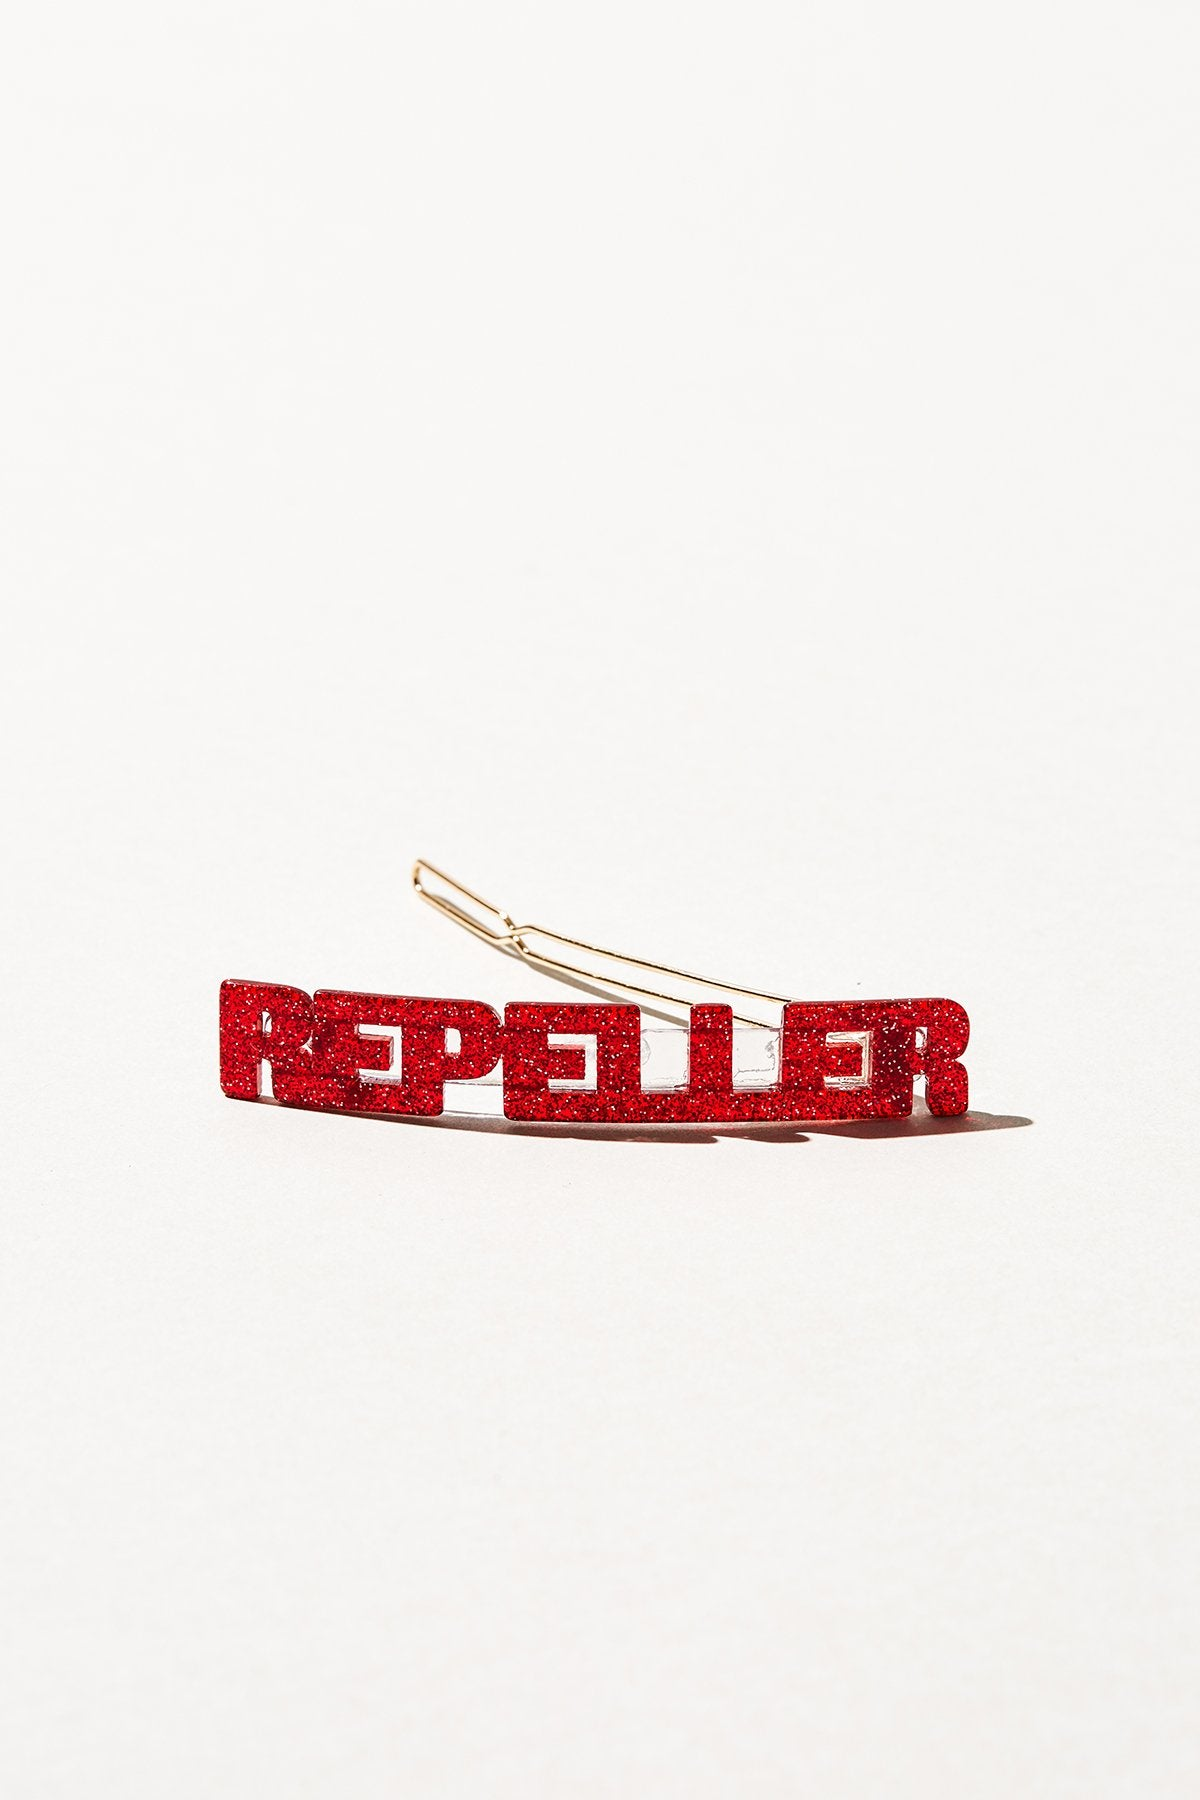 Repeller Flagpole - Red Glitter